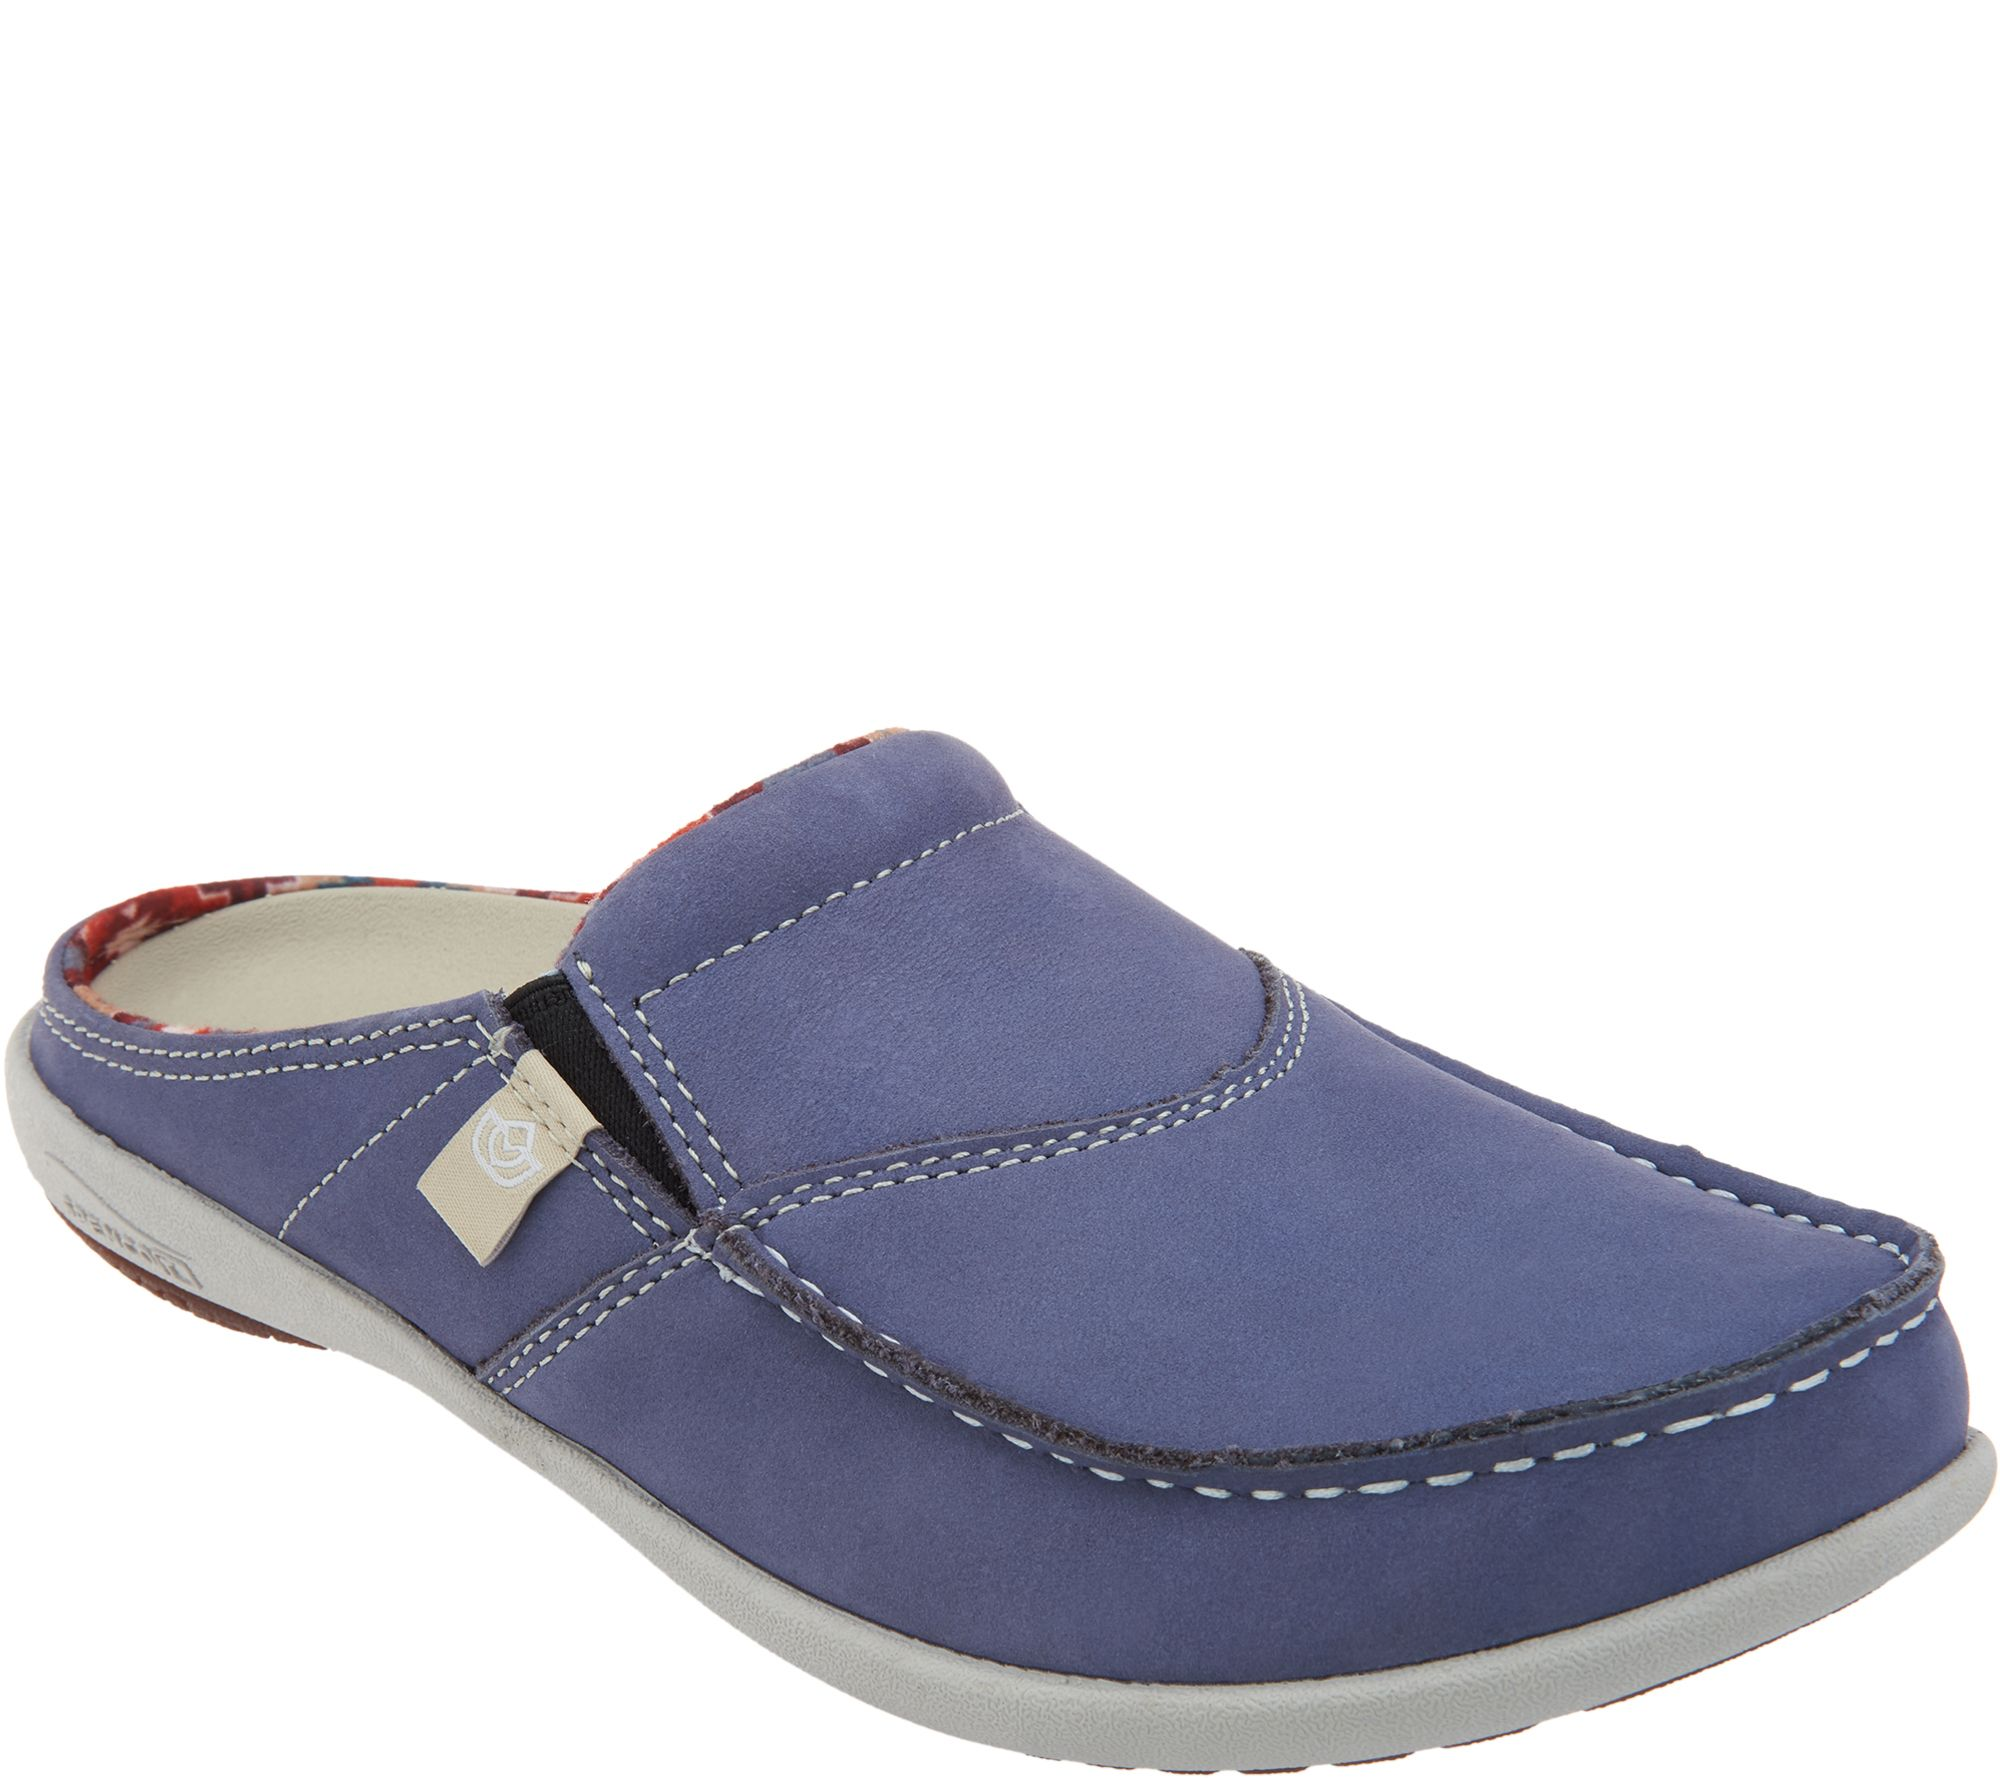 32fa4f6fc66 Spenco Orthotic Suede Slides -First Nation - Page 1 — QVC.com